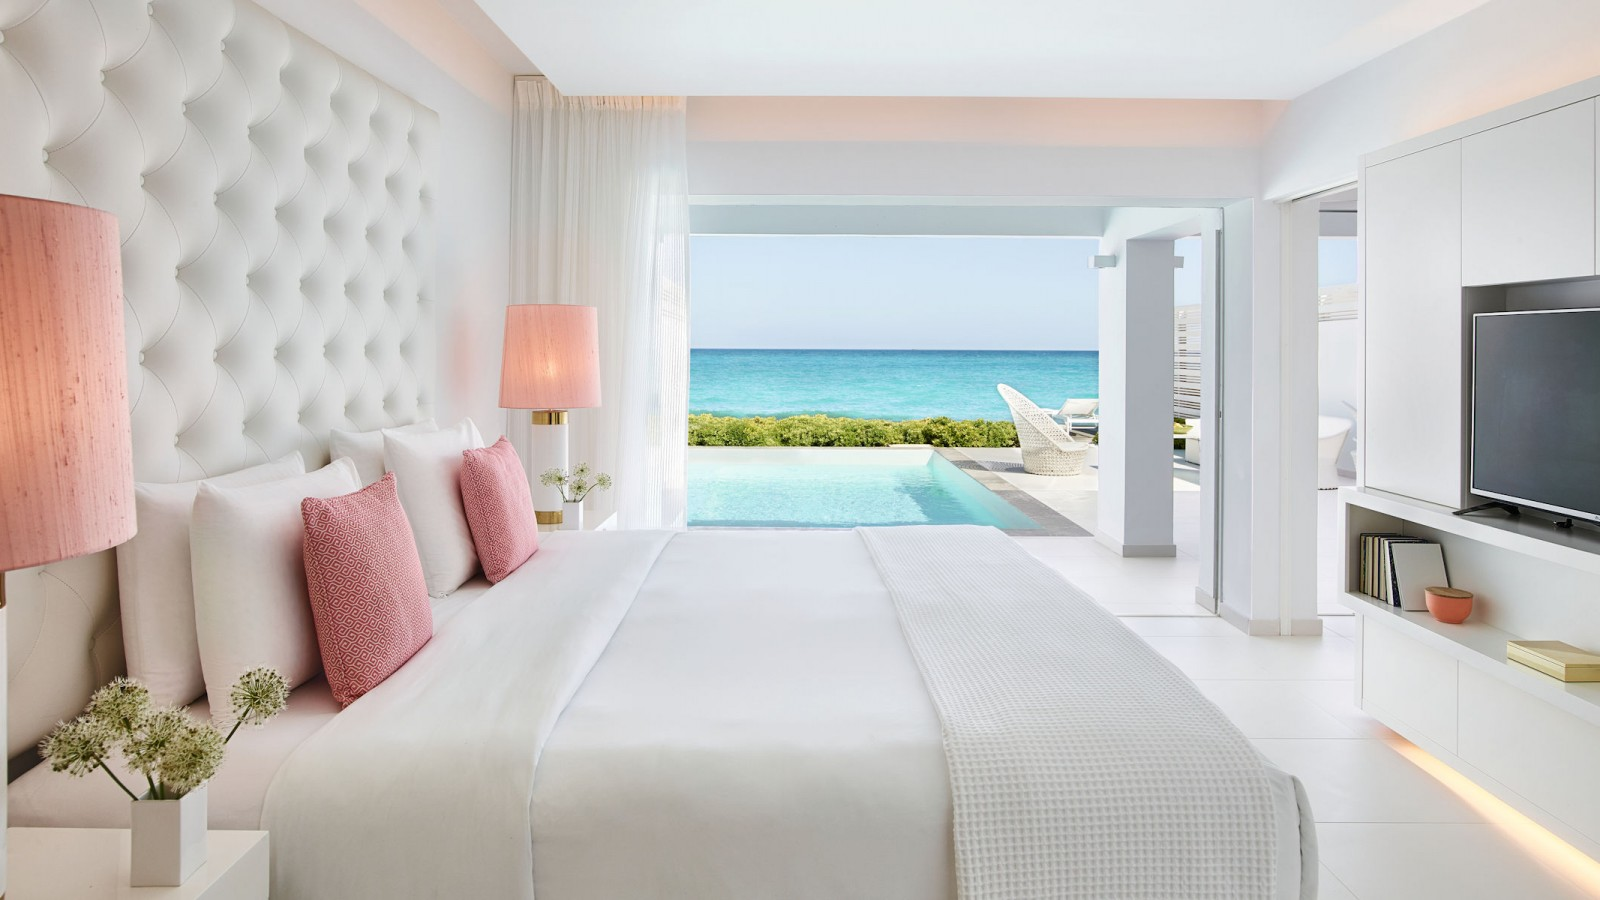 LUX ME White Palace Villa Luxe Yali Seafront With Private Pool